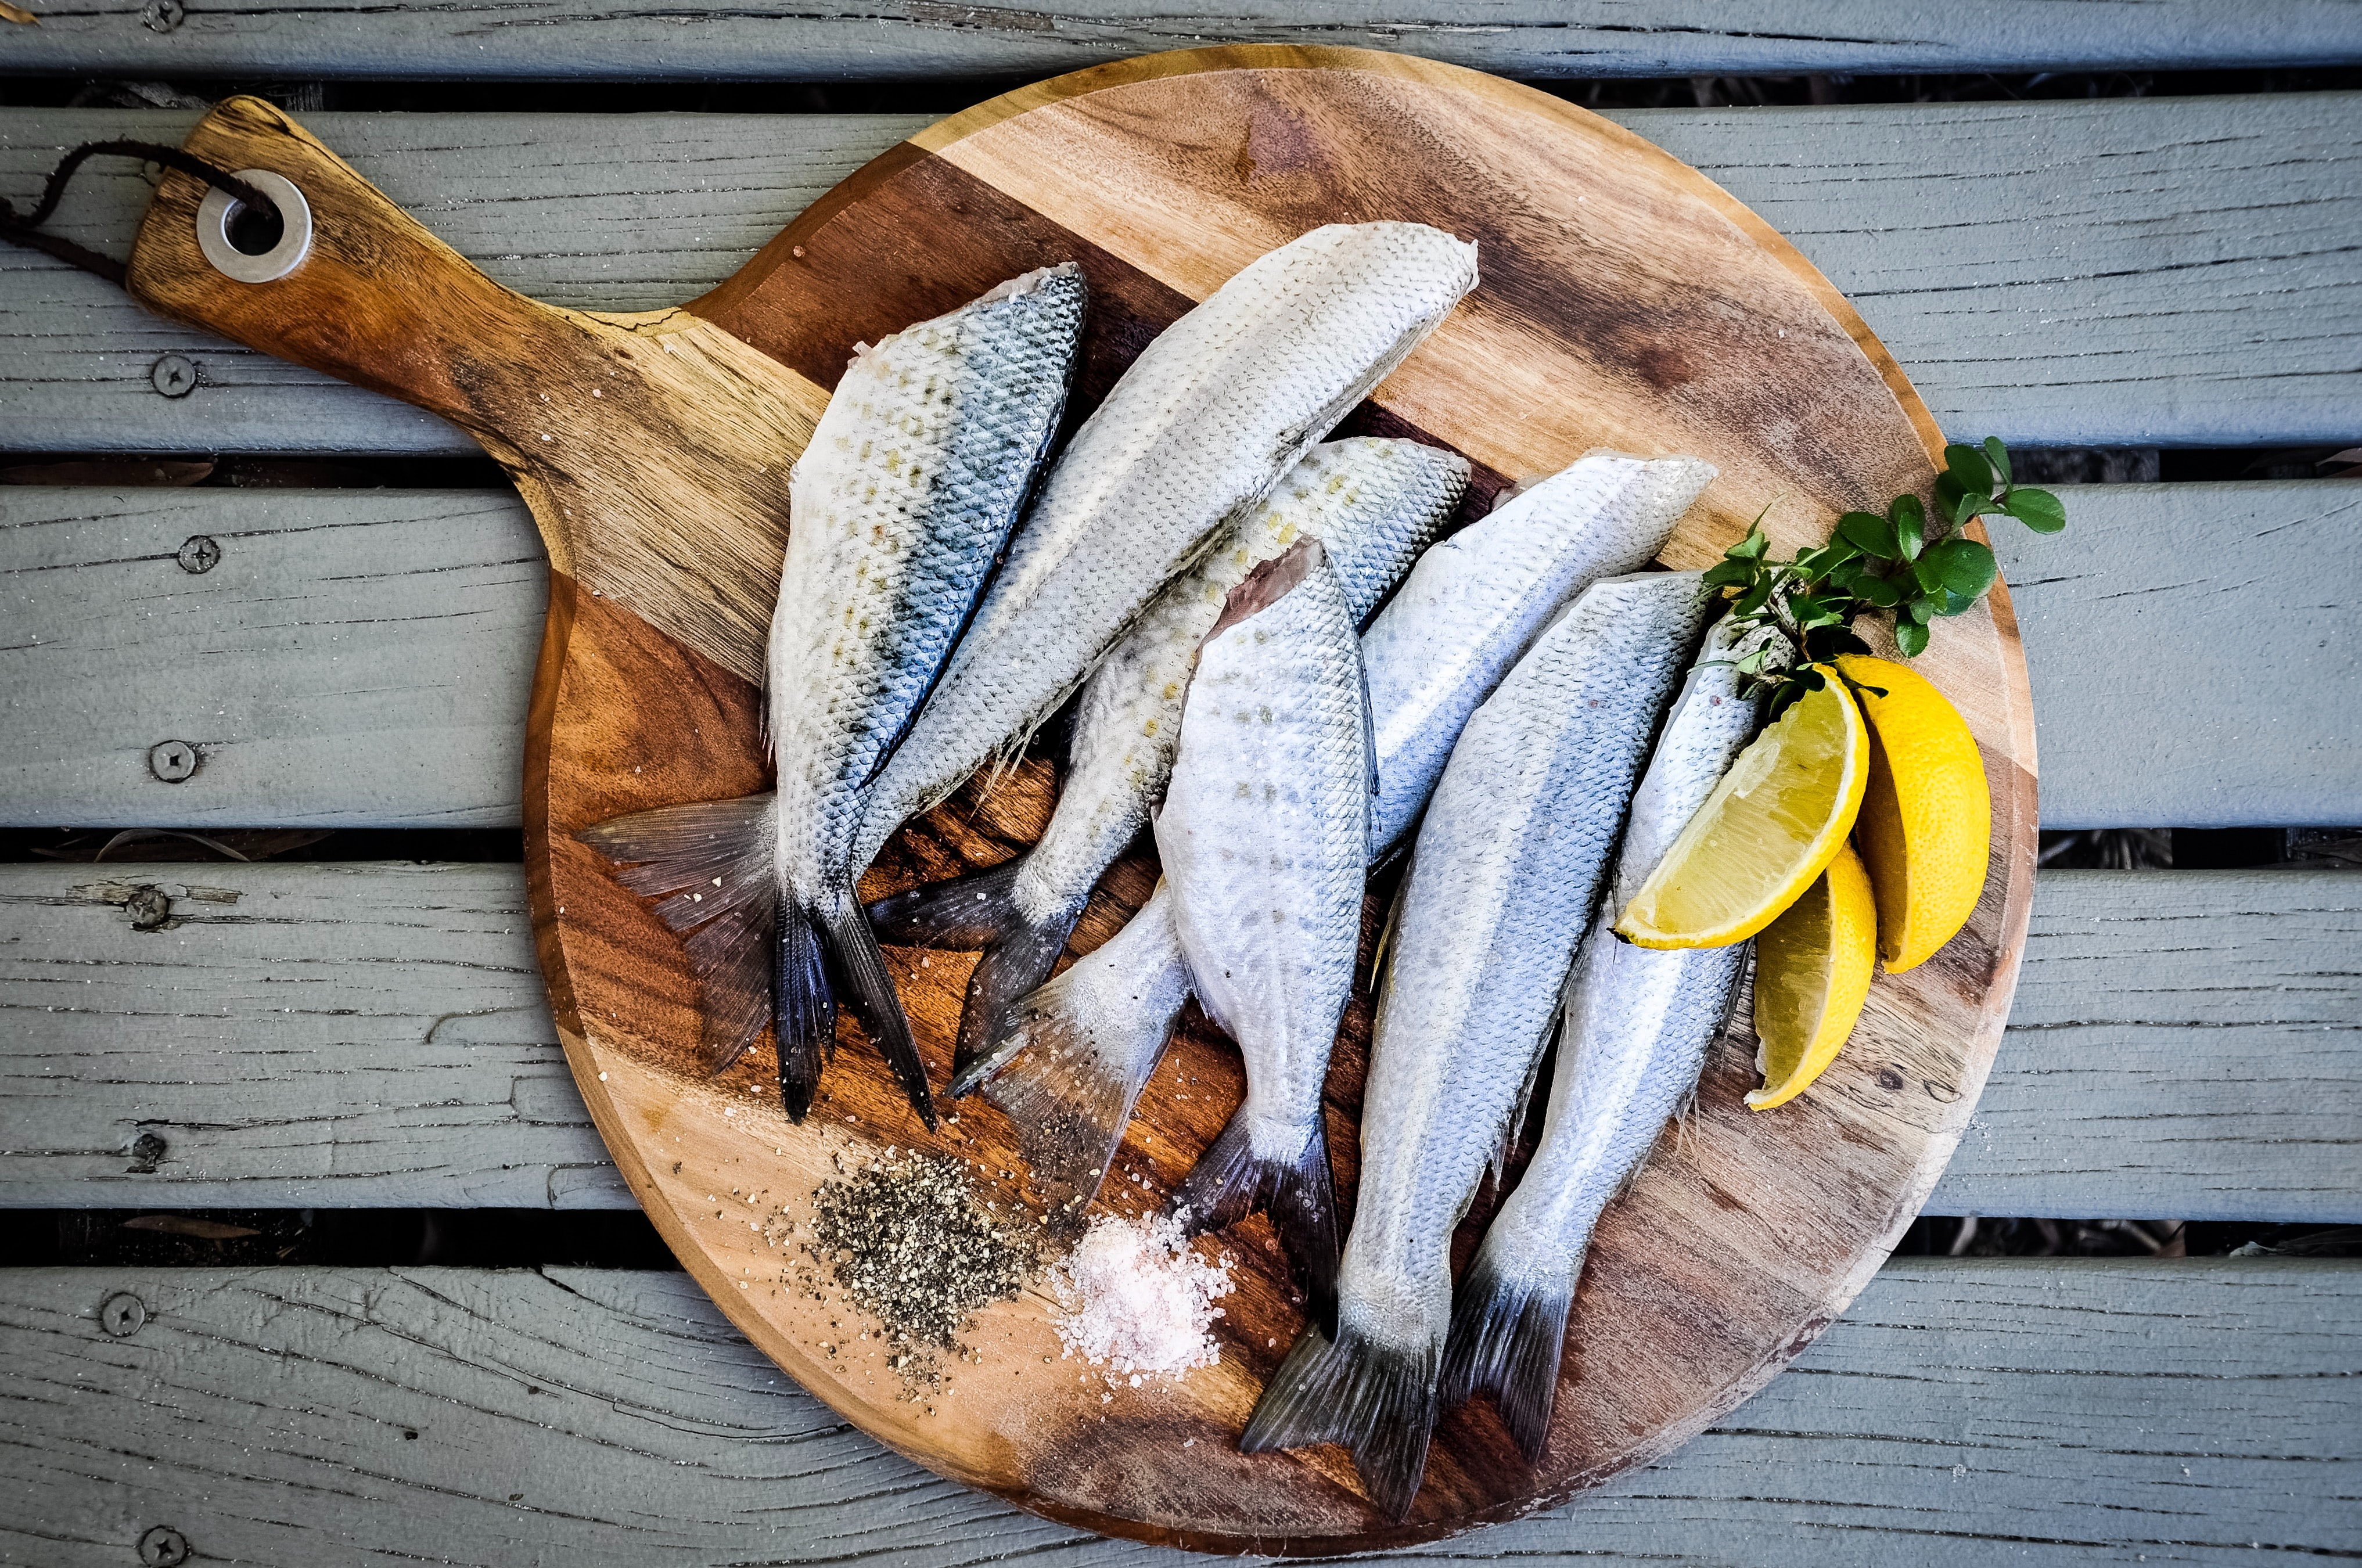 A brown wooden platter is set on a grey wooden table, zoomed in. On the platter are several fish, some cut lemons, loose salt and pepper, and an herb.